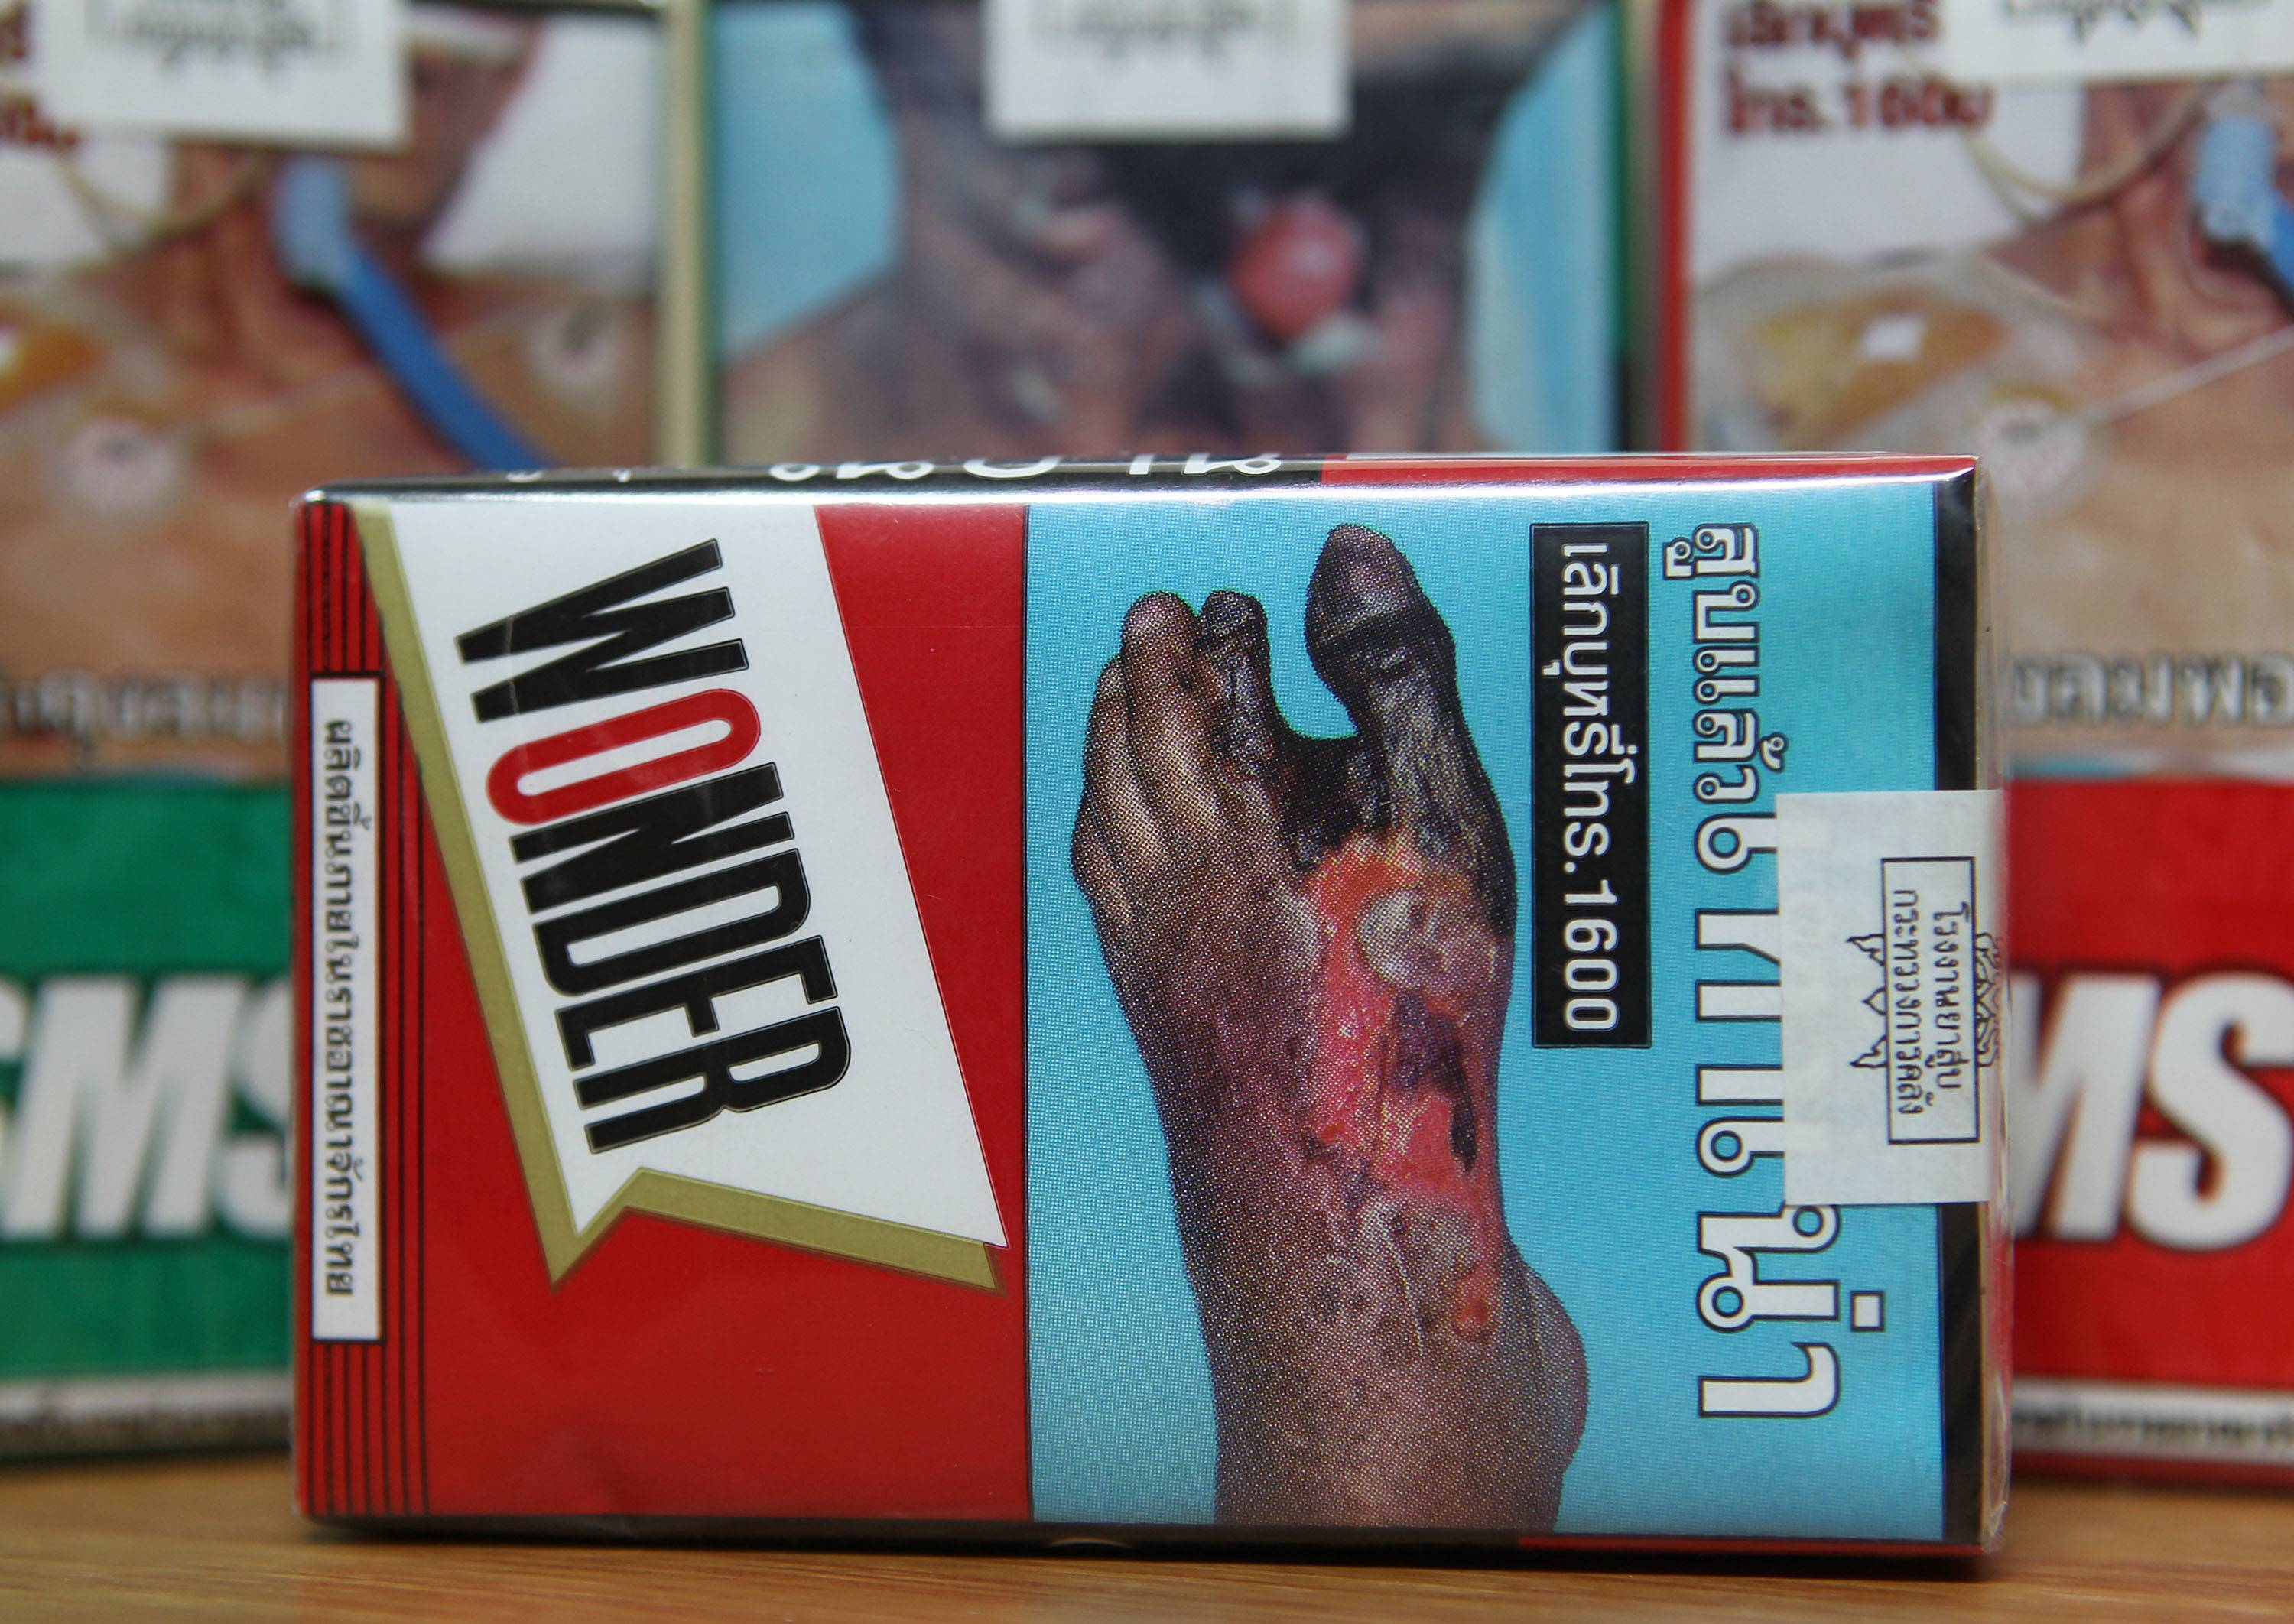 More countries adding graphic warnings to cigarettes